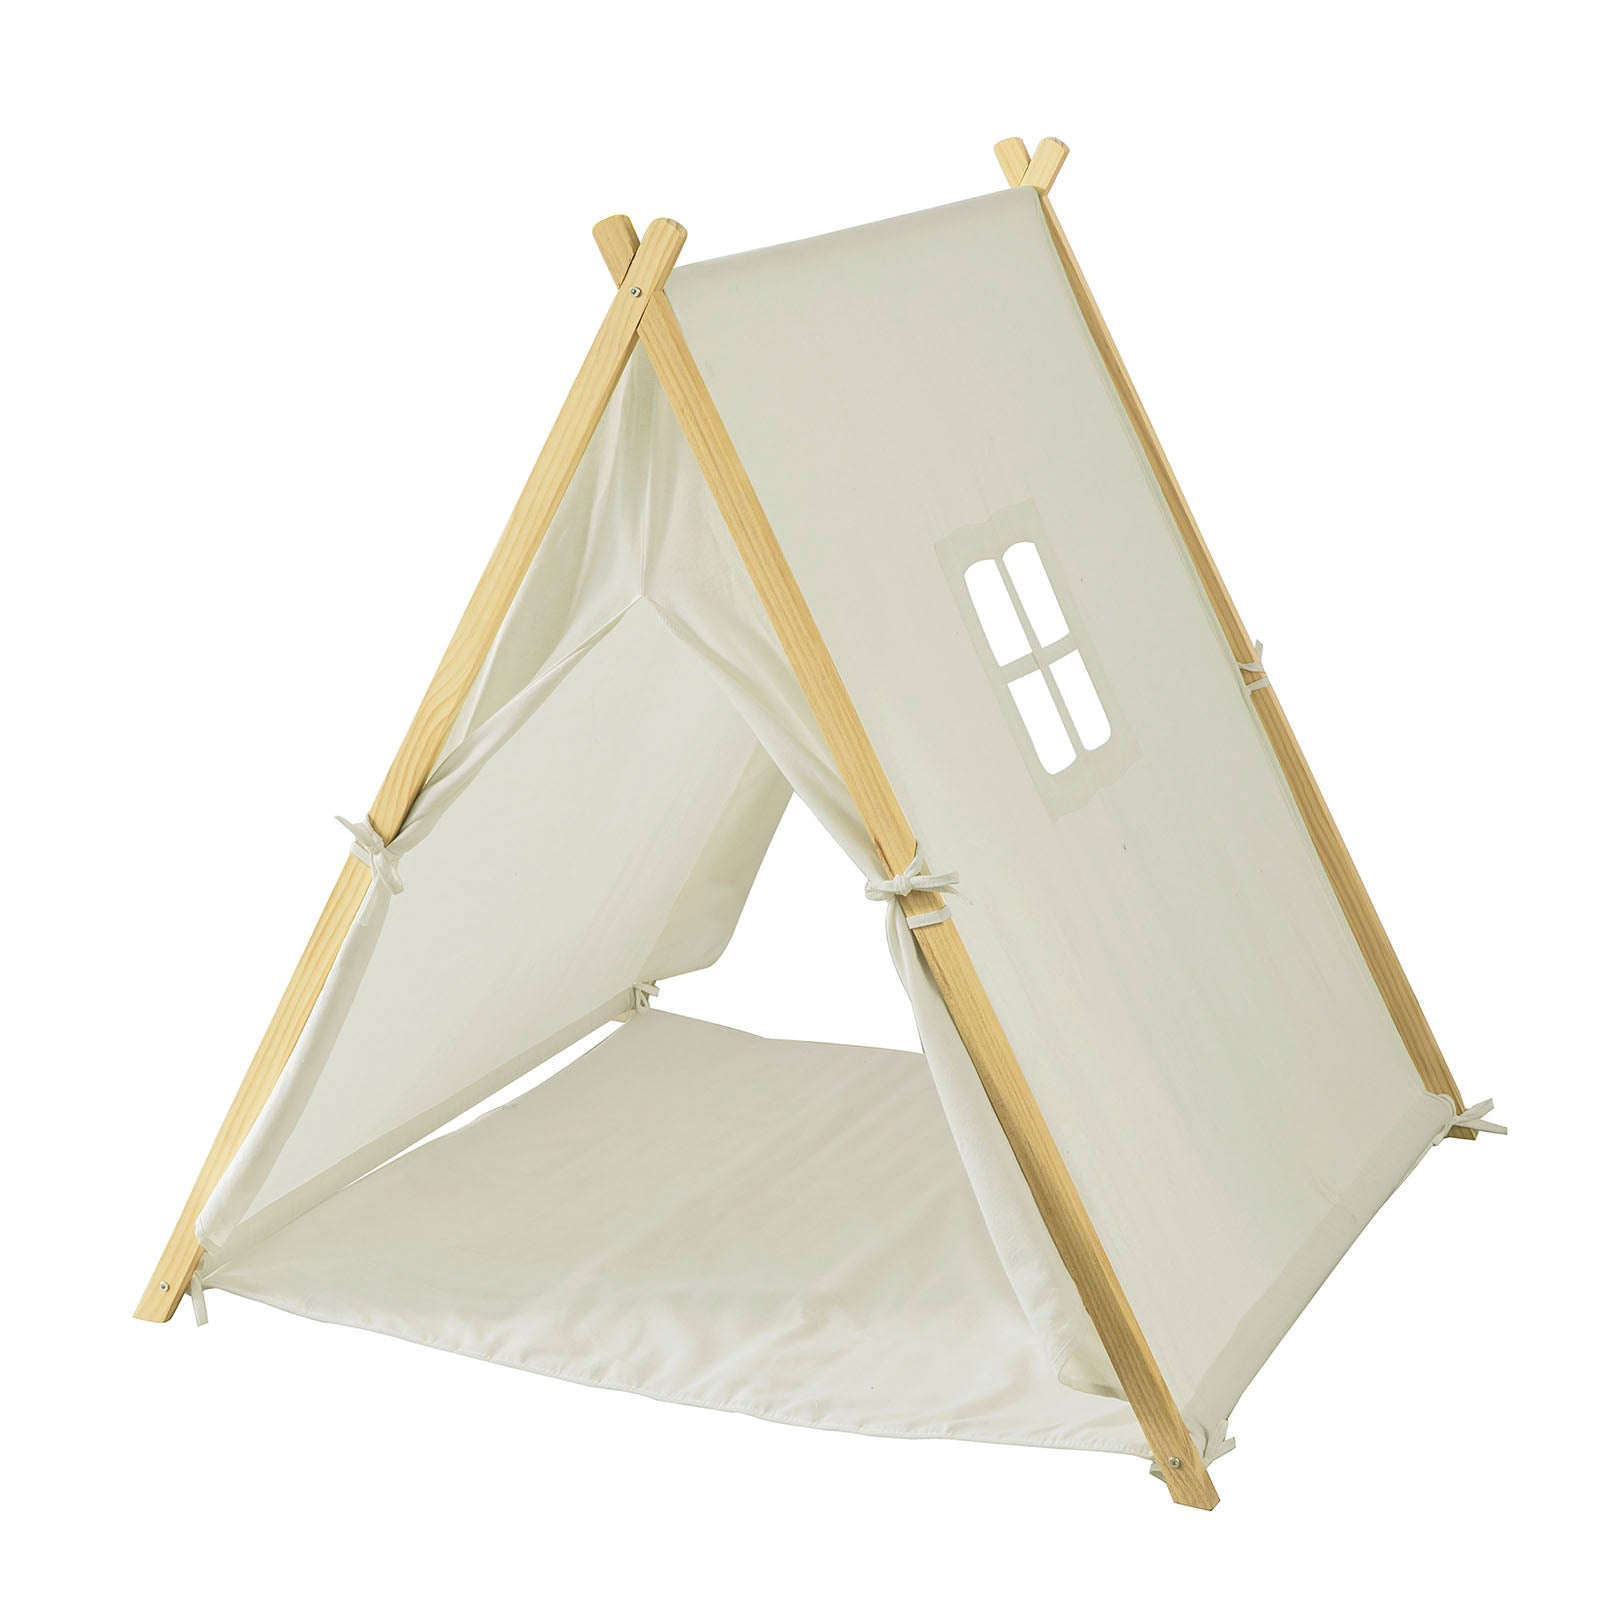 SoBuy Children's play tent Indian tent with 2 doors and a window White toy curtains OSS02-W